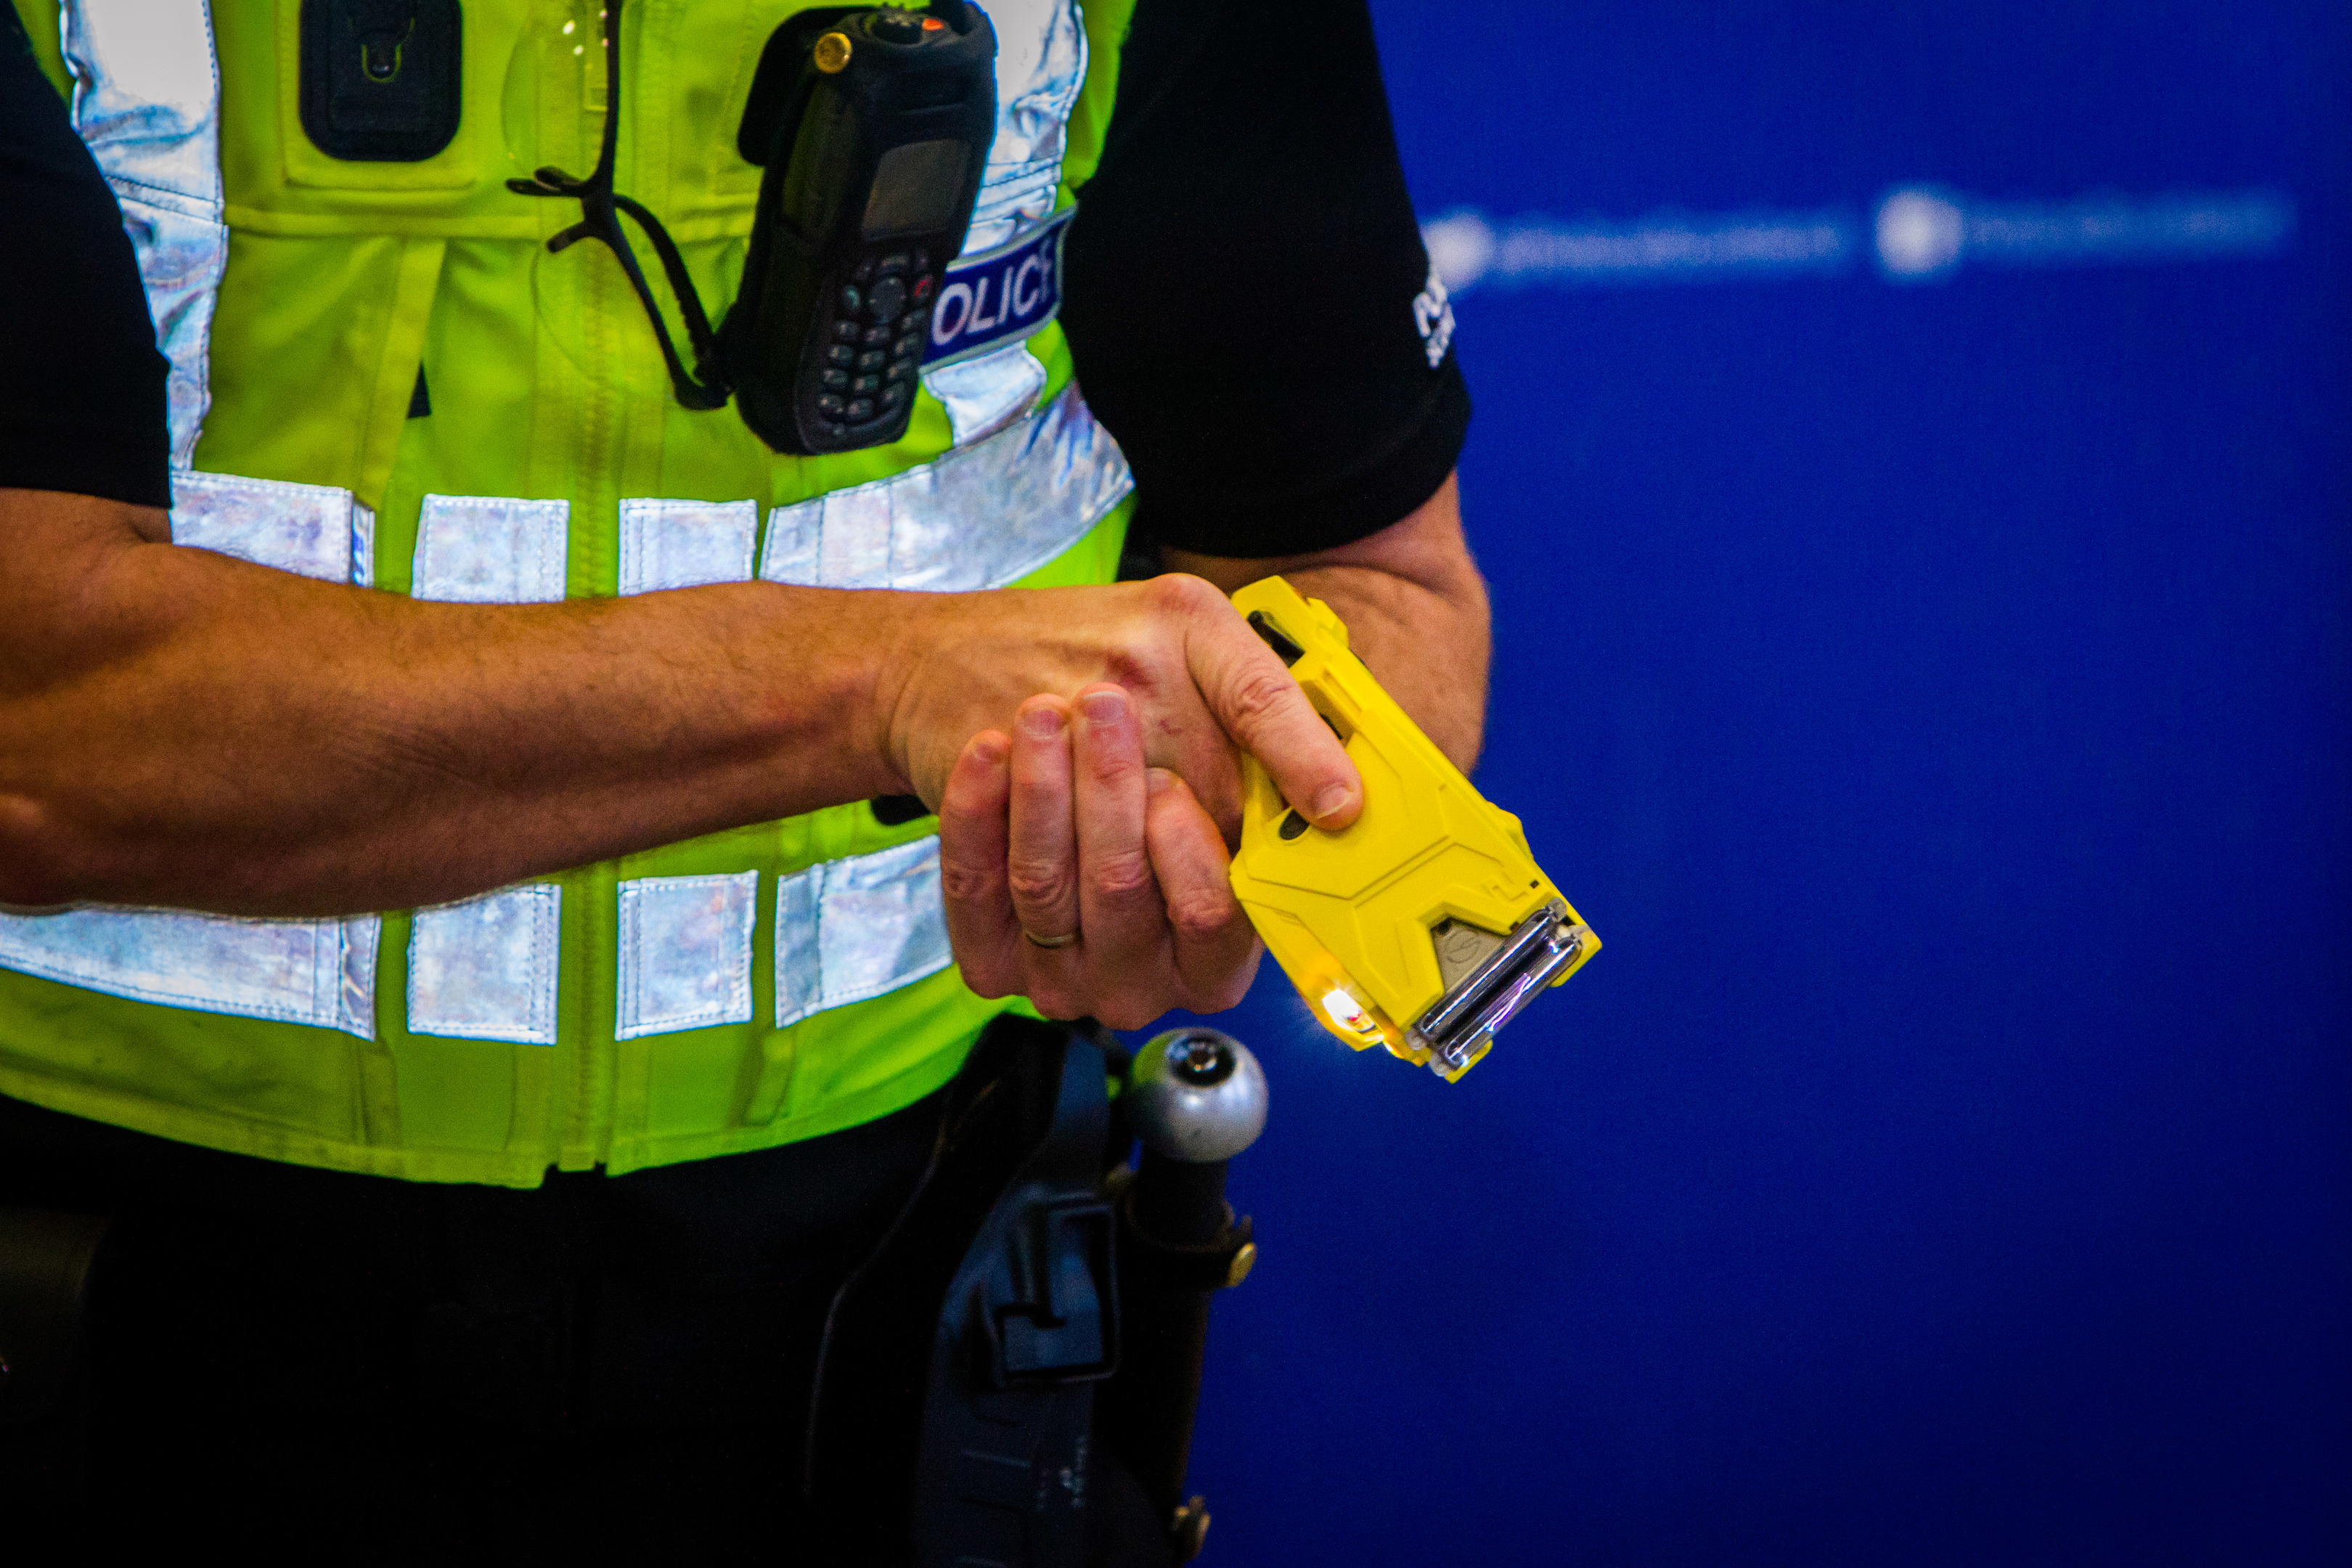 A police officer with a taser (Steve MacDougall / DC Thomson)